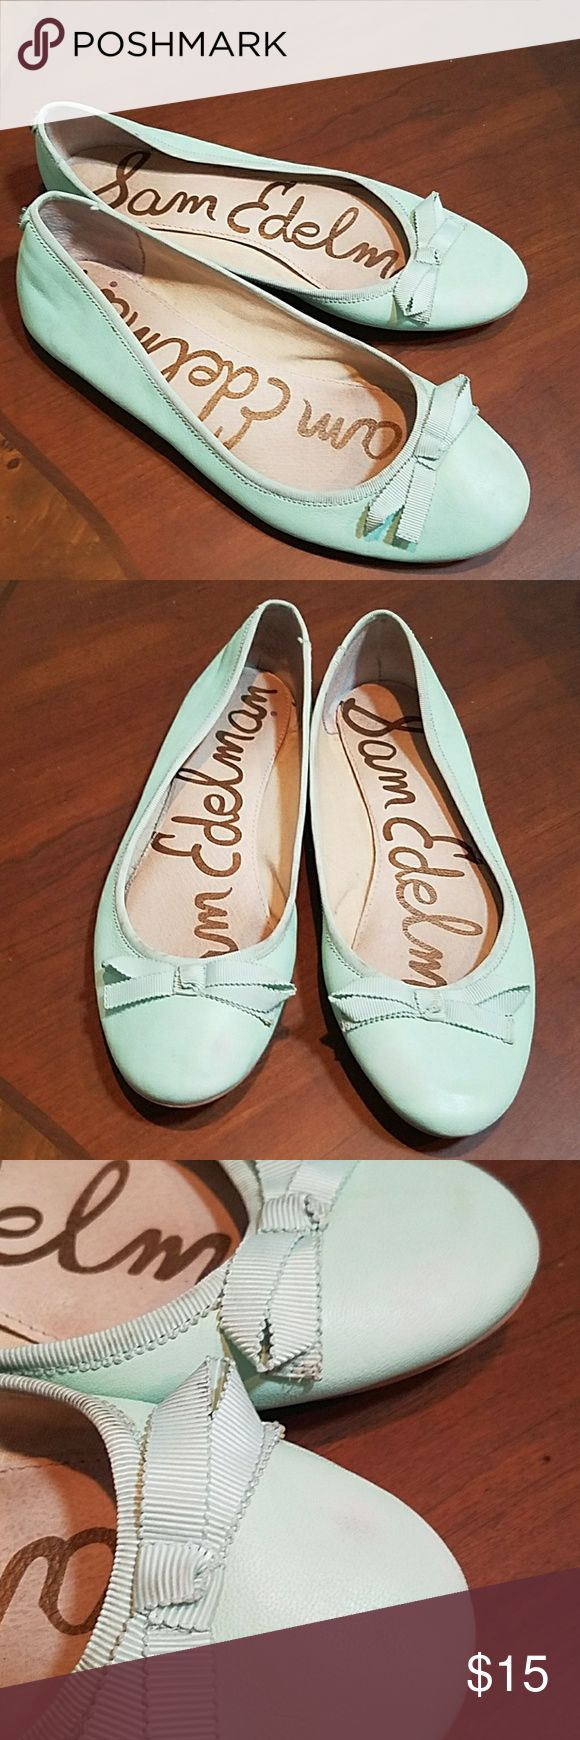 """Sam Edleman Mint Green Felcia Flats 8 Sam Edleman Mint Green Felicia Flats size 8.  No size number but measure 9.75"""", which is 8 on Sam Endleman size guide. Some scuffs but still cute. Sam Edelman Shoes Flats & Loafers"""